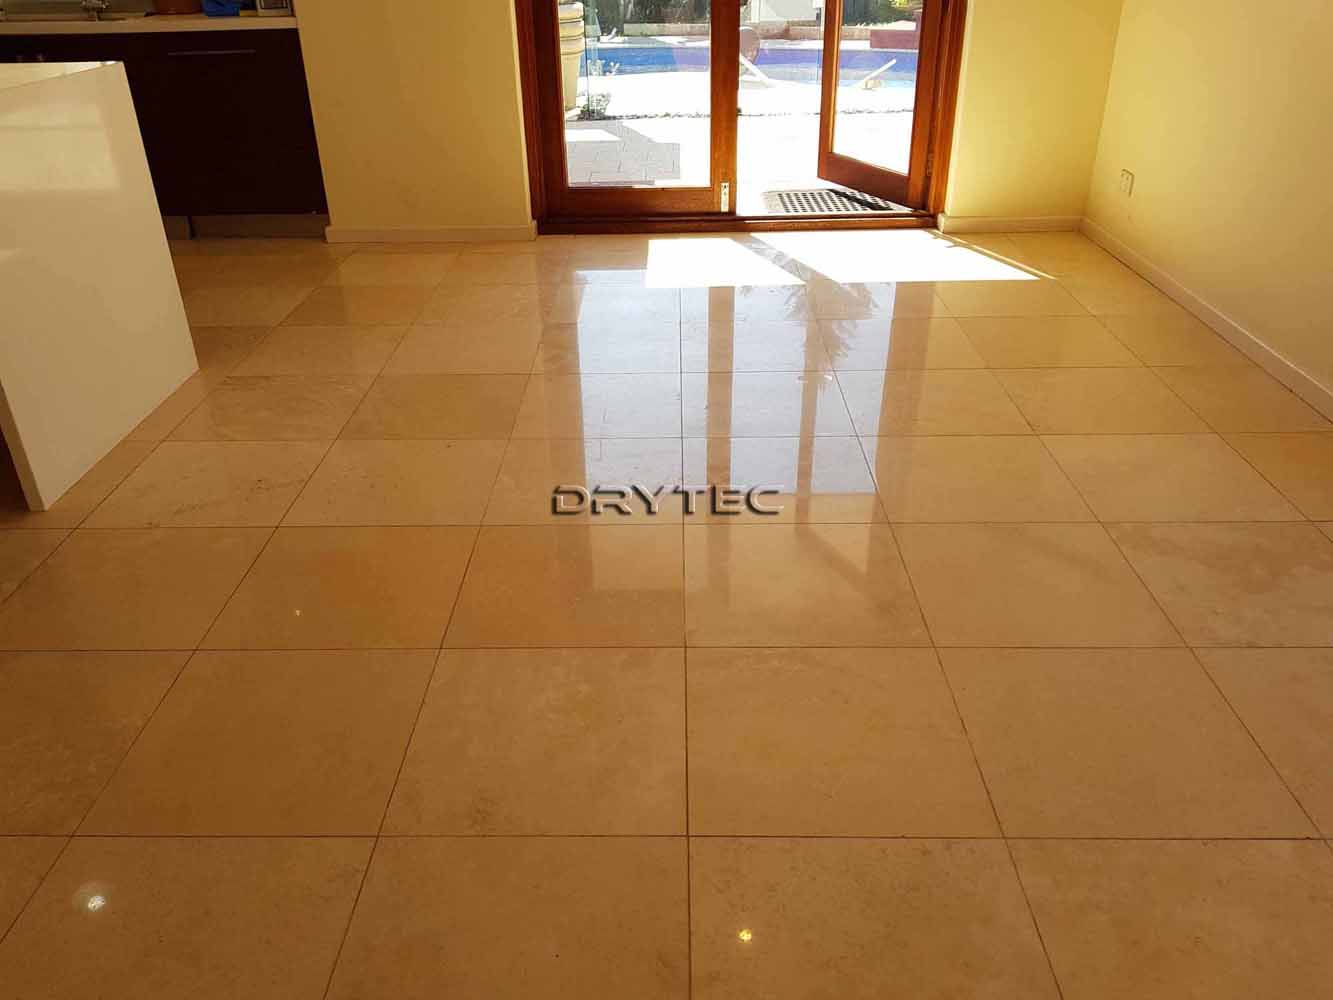 Travertine Restoration-Grinding-Honing-Polishing-Cleaning and Sealing Service in Perth WA